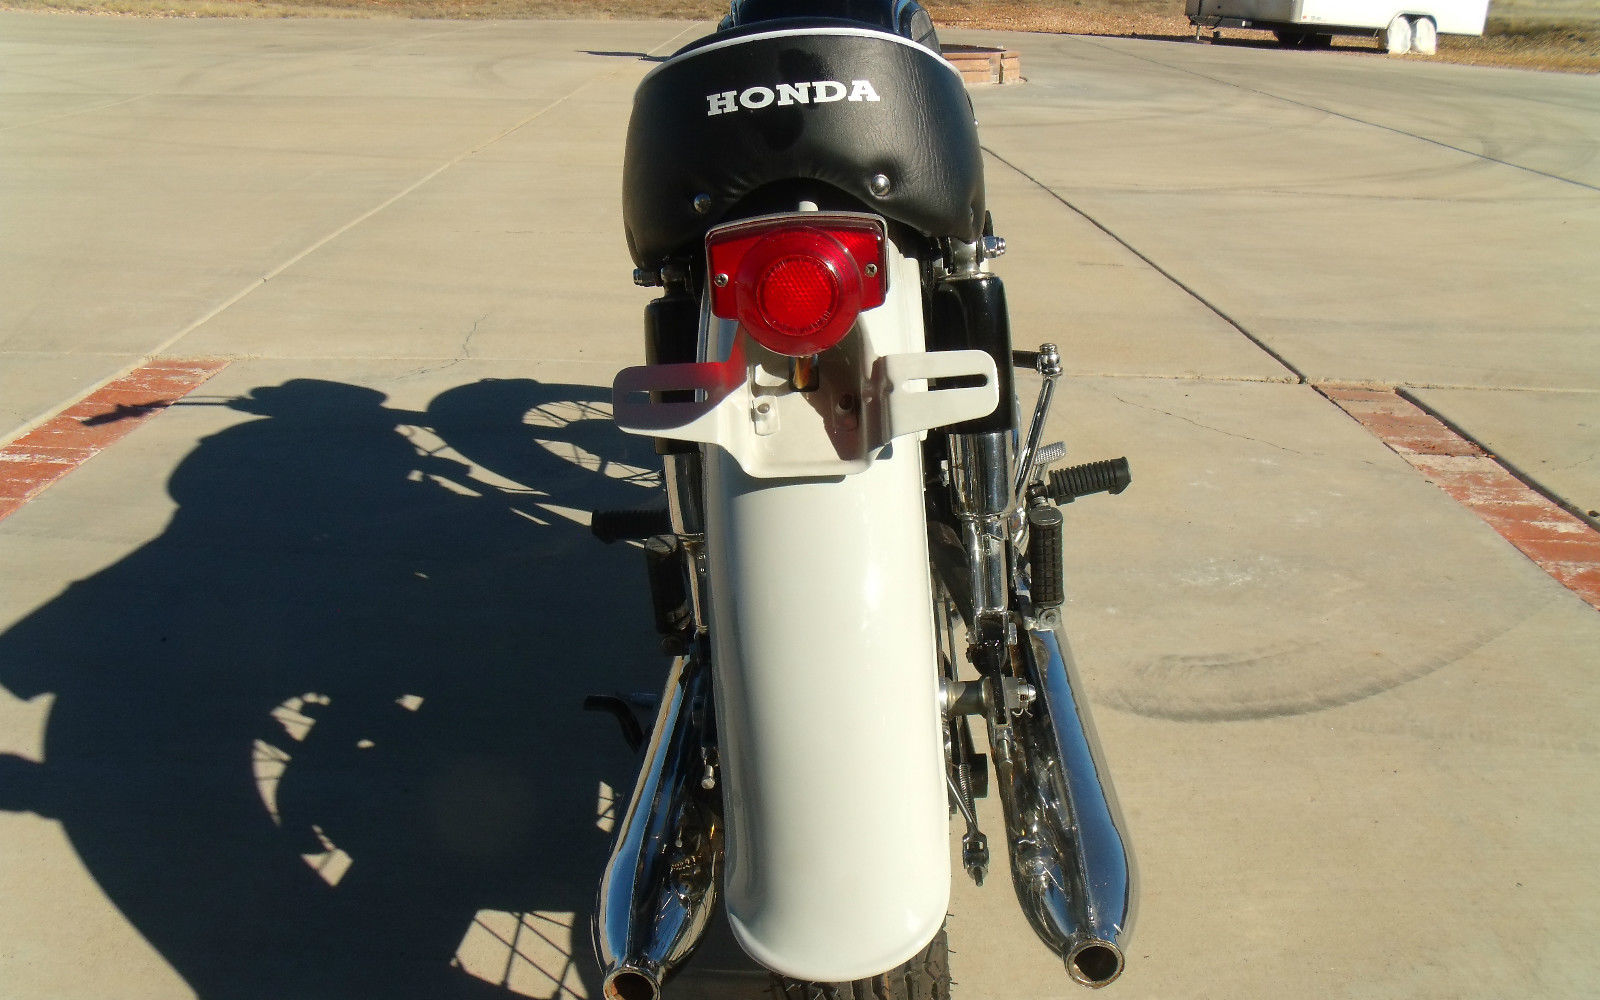 Honda CB450 Black Bomber - 1967 - Rear Light Unit, Rear Fender and Mufflers.